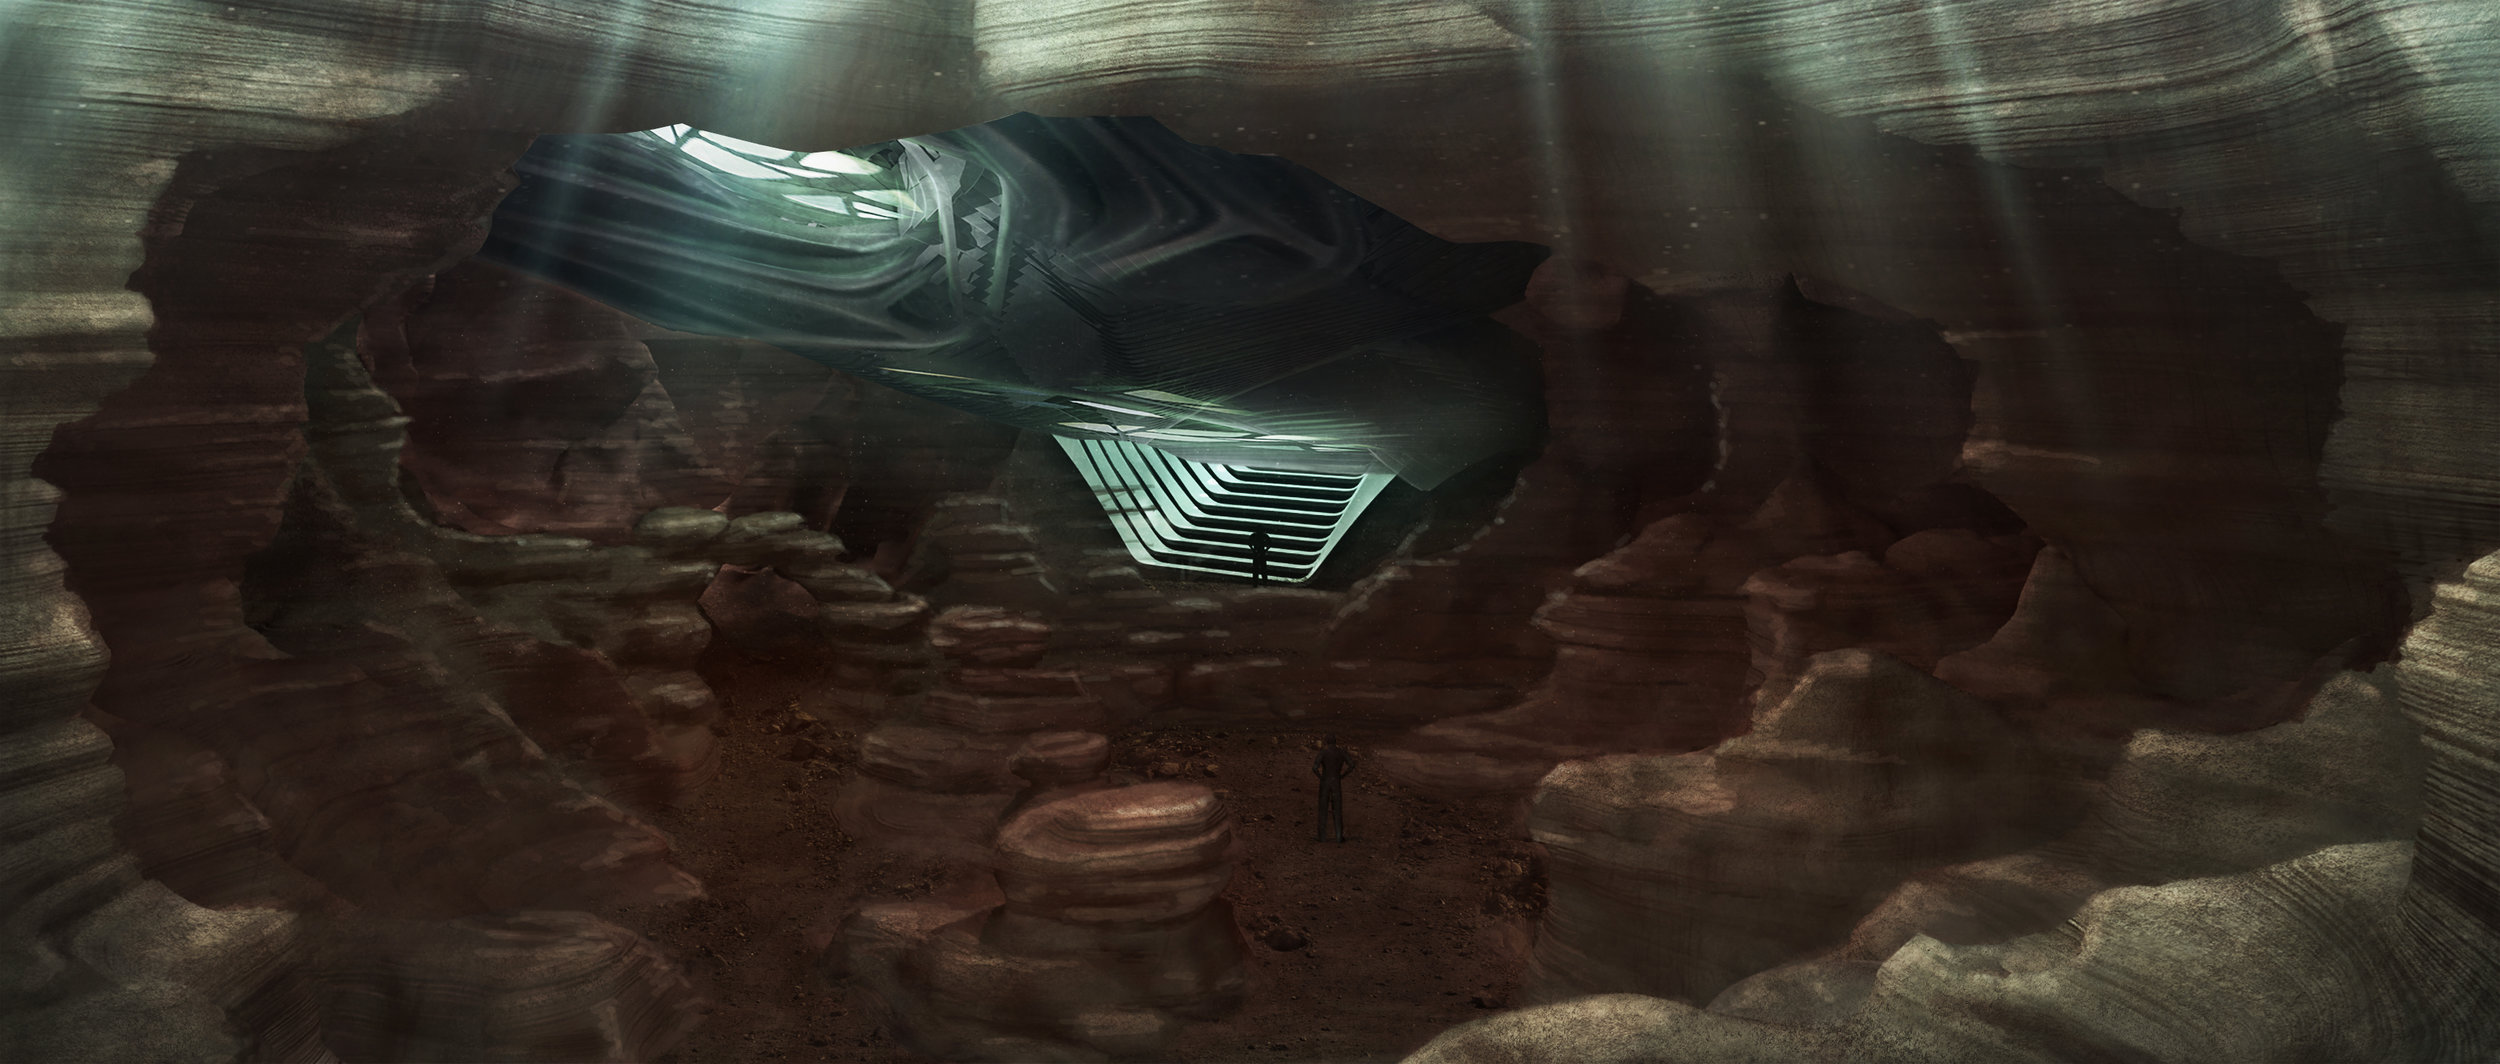 Power Rangers Cavern Concept by Stevo Bedford